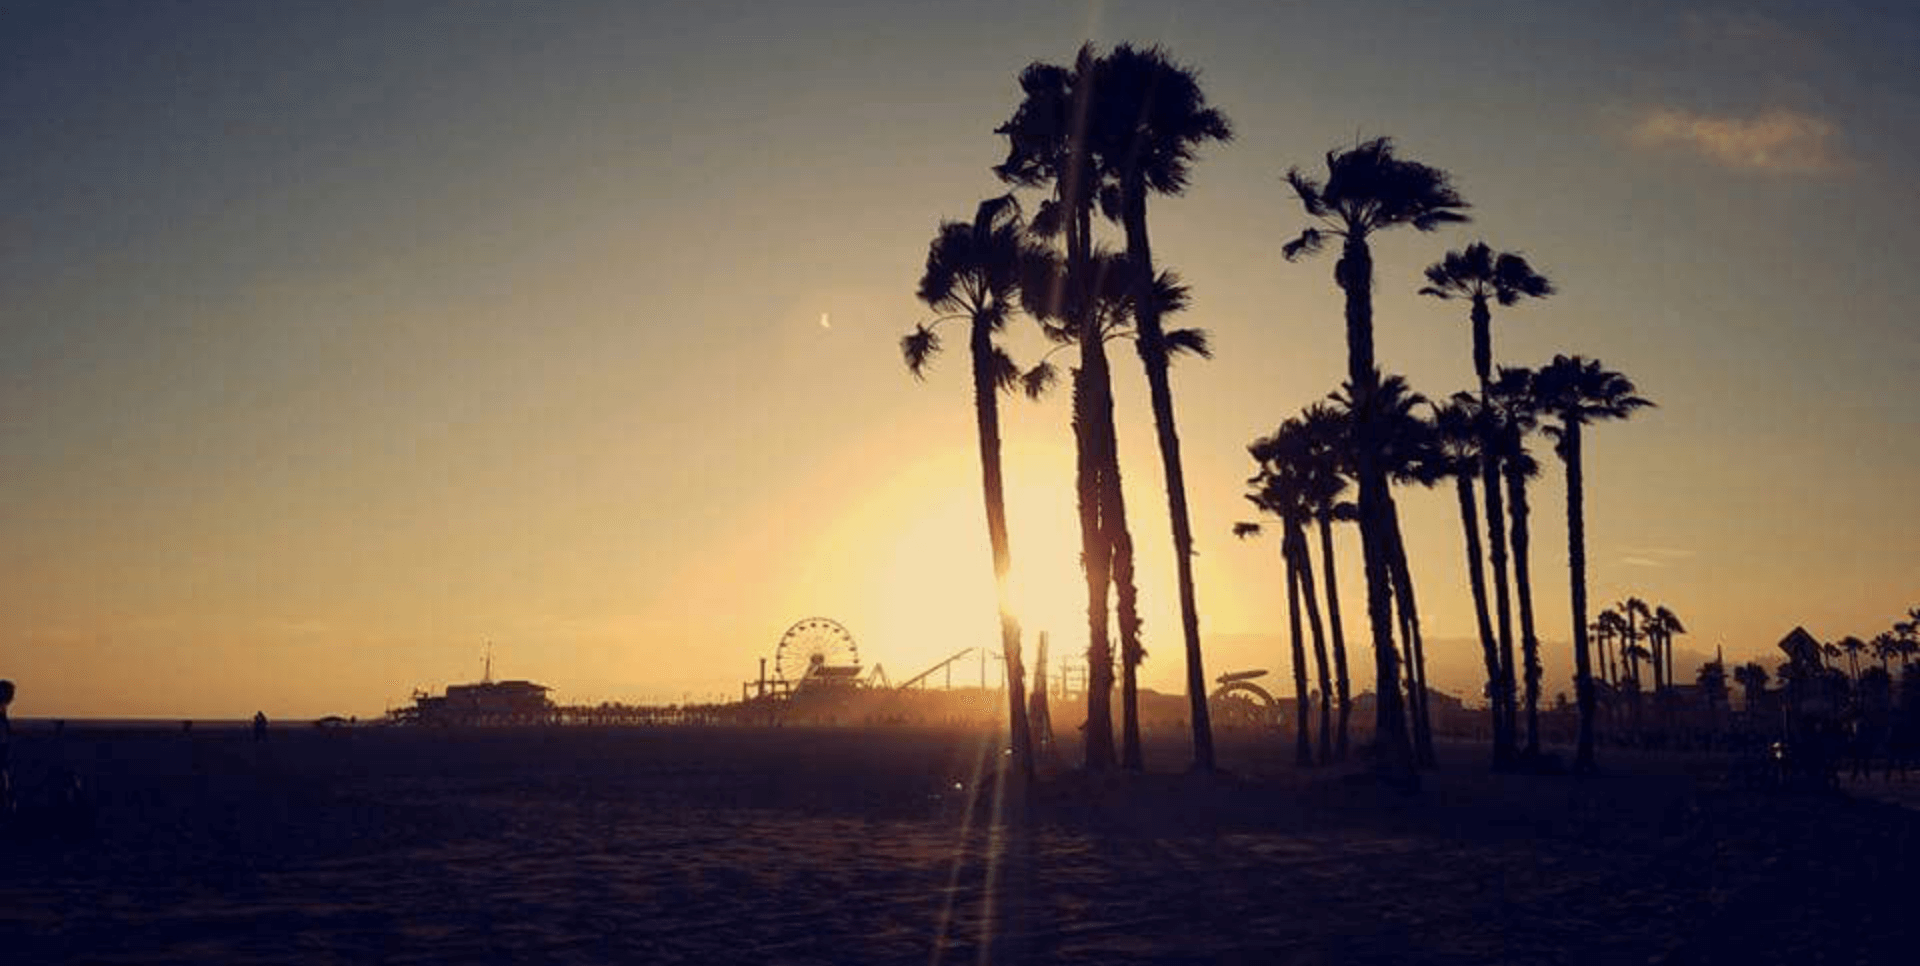 ferris wheel and palm trees on the beach at sunset